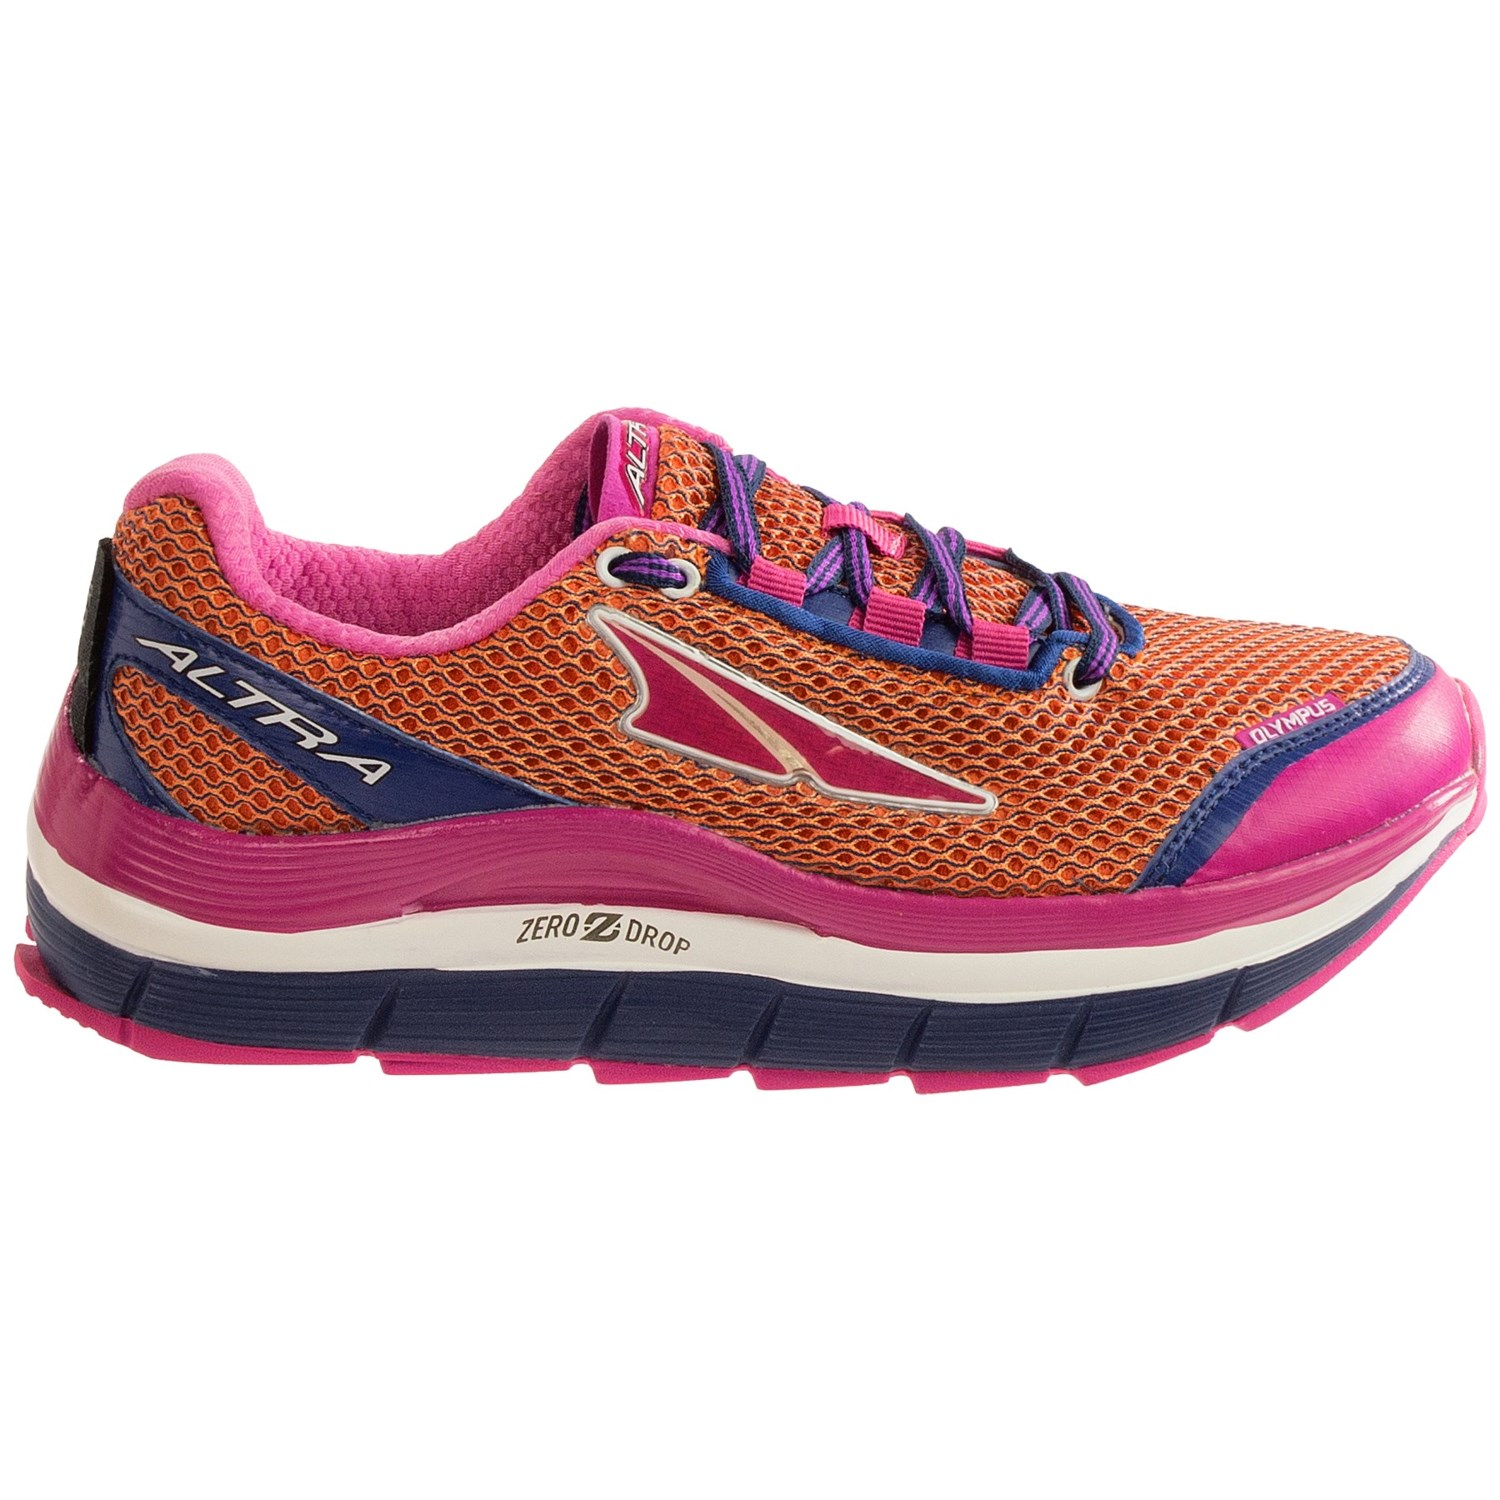 Altra Running Shoes Clearance